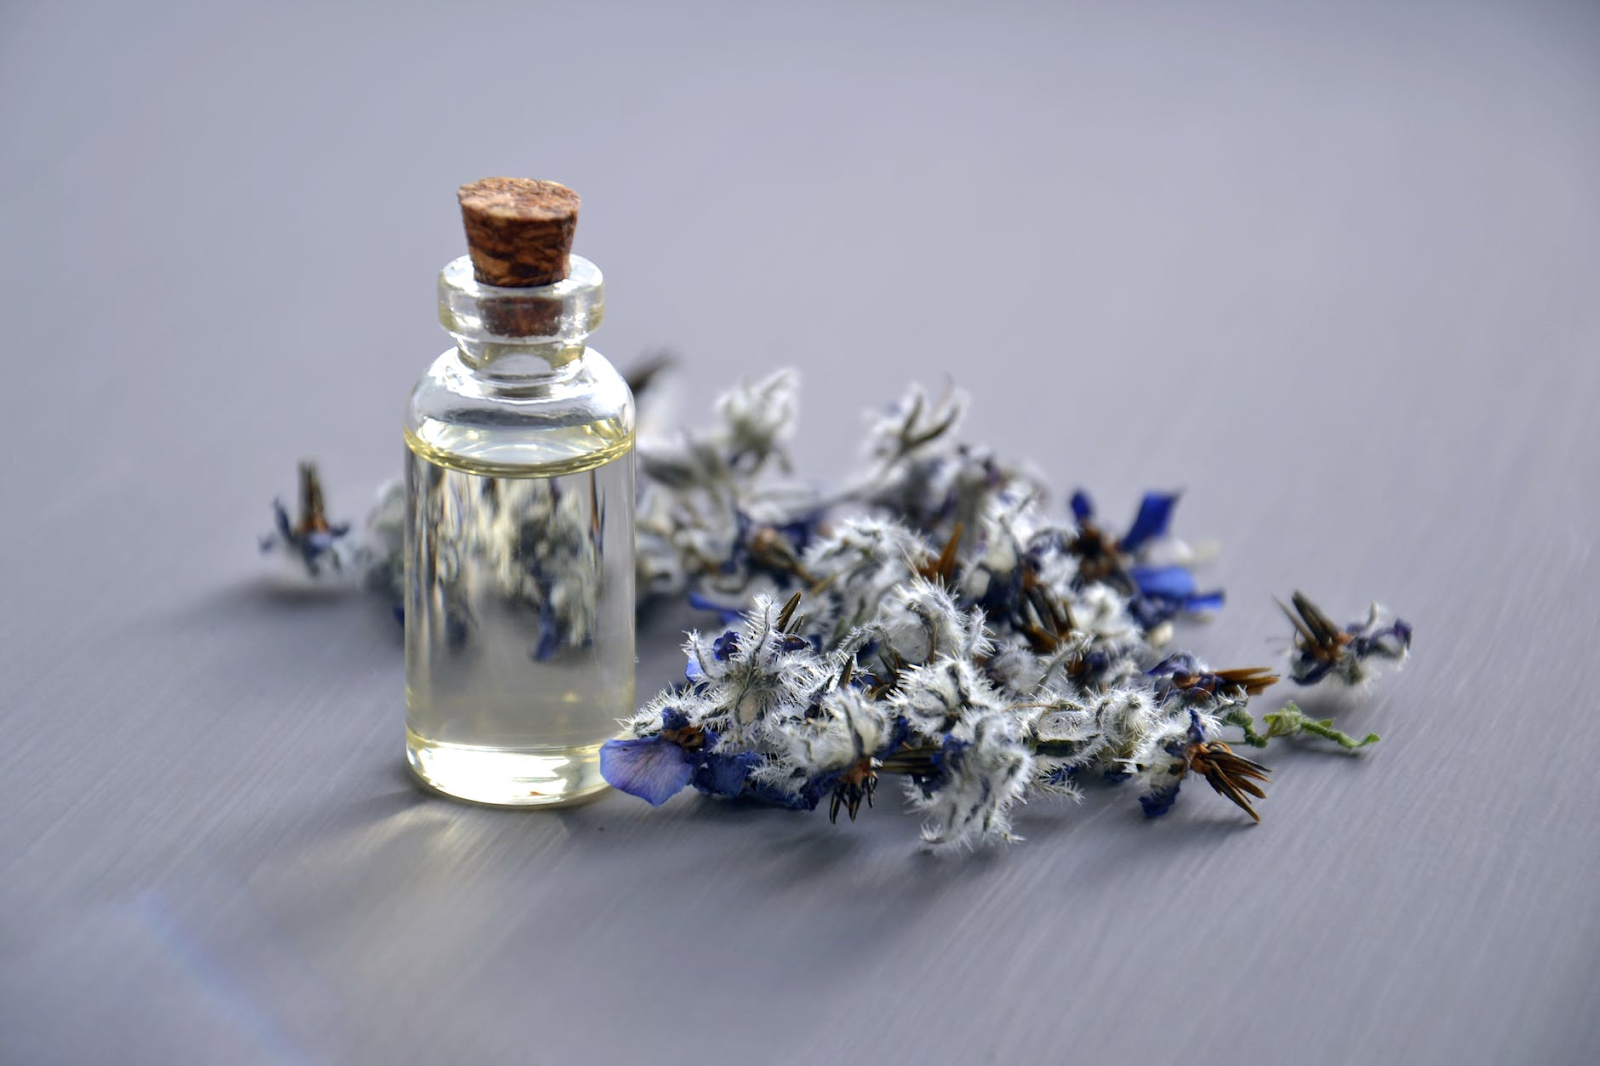 A small glass vial of a cozy lavender essential oil